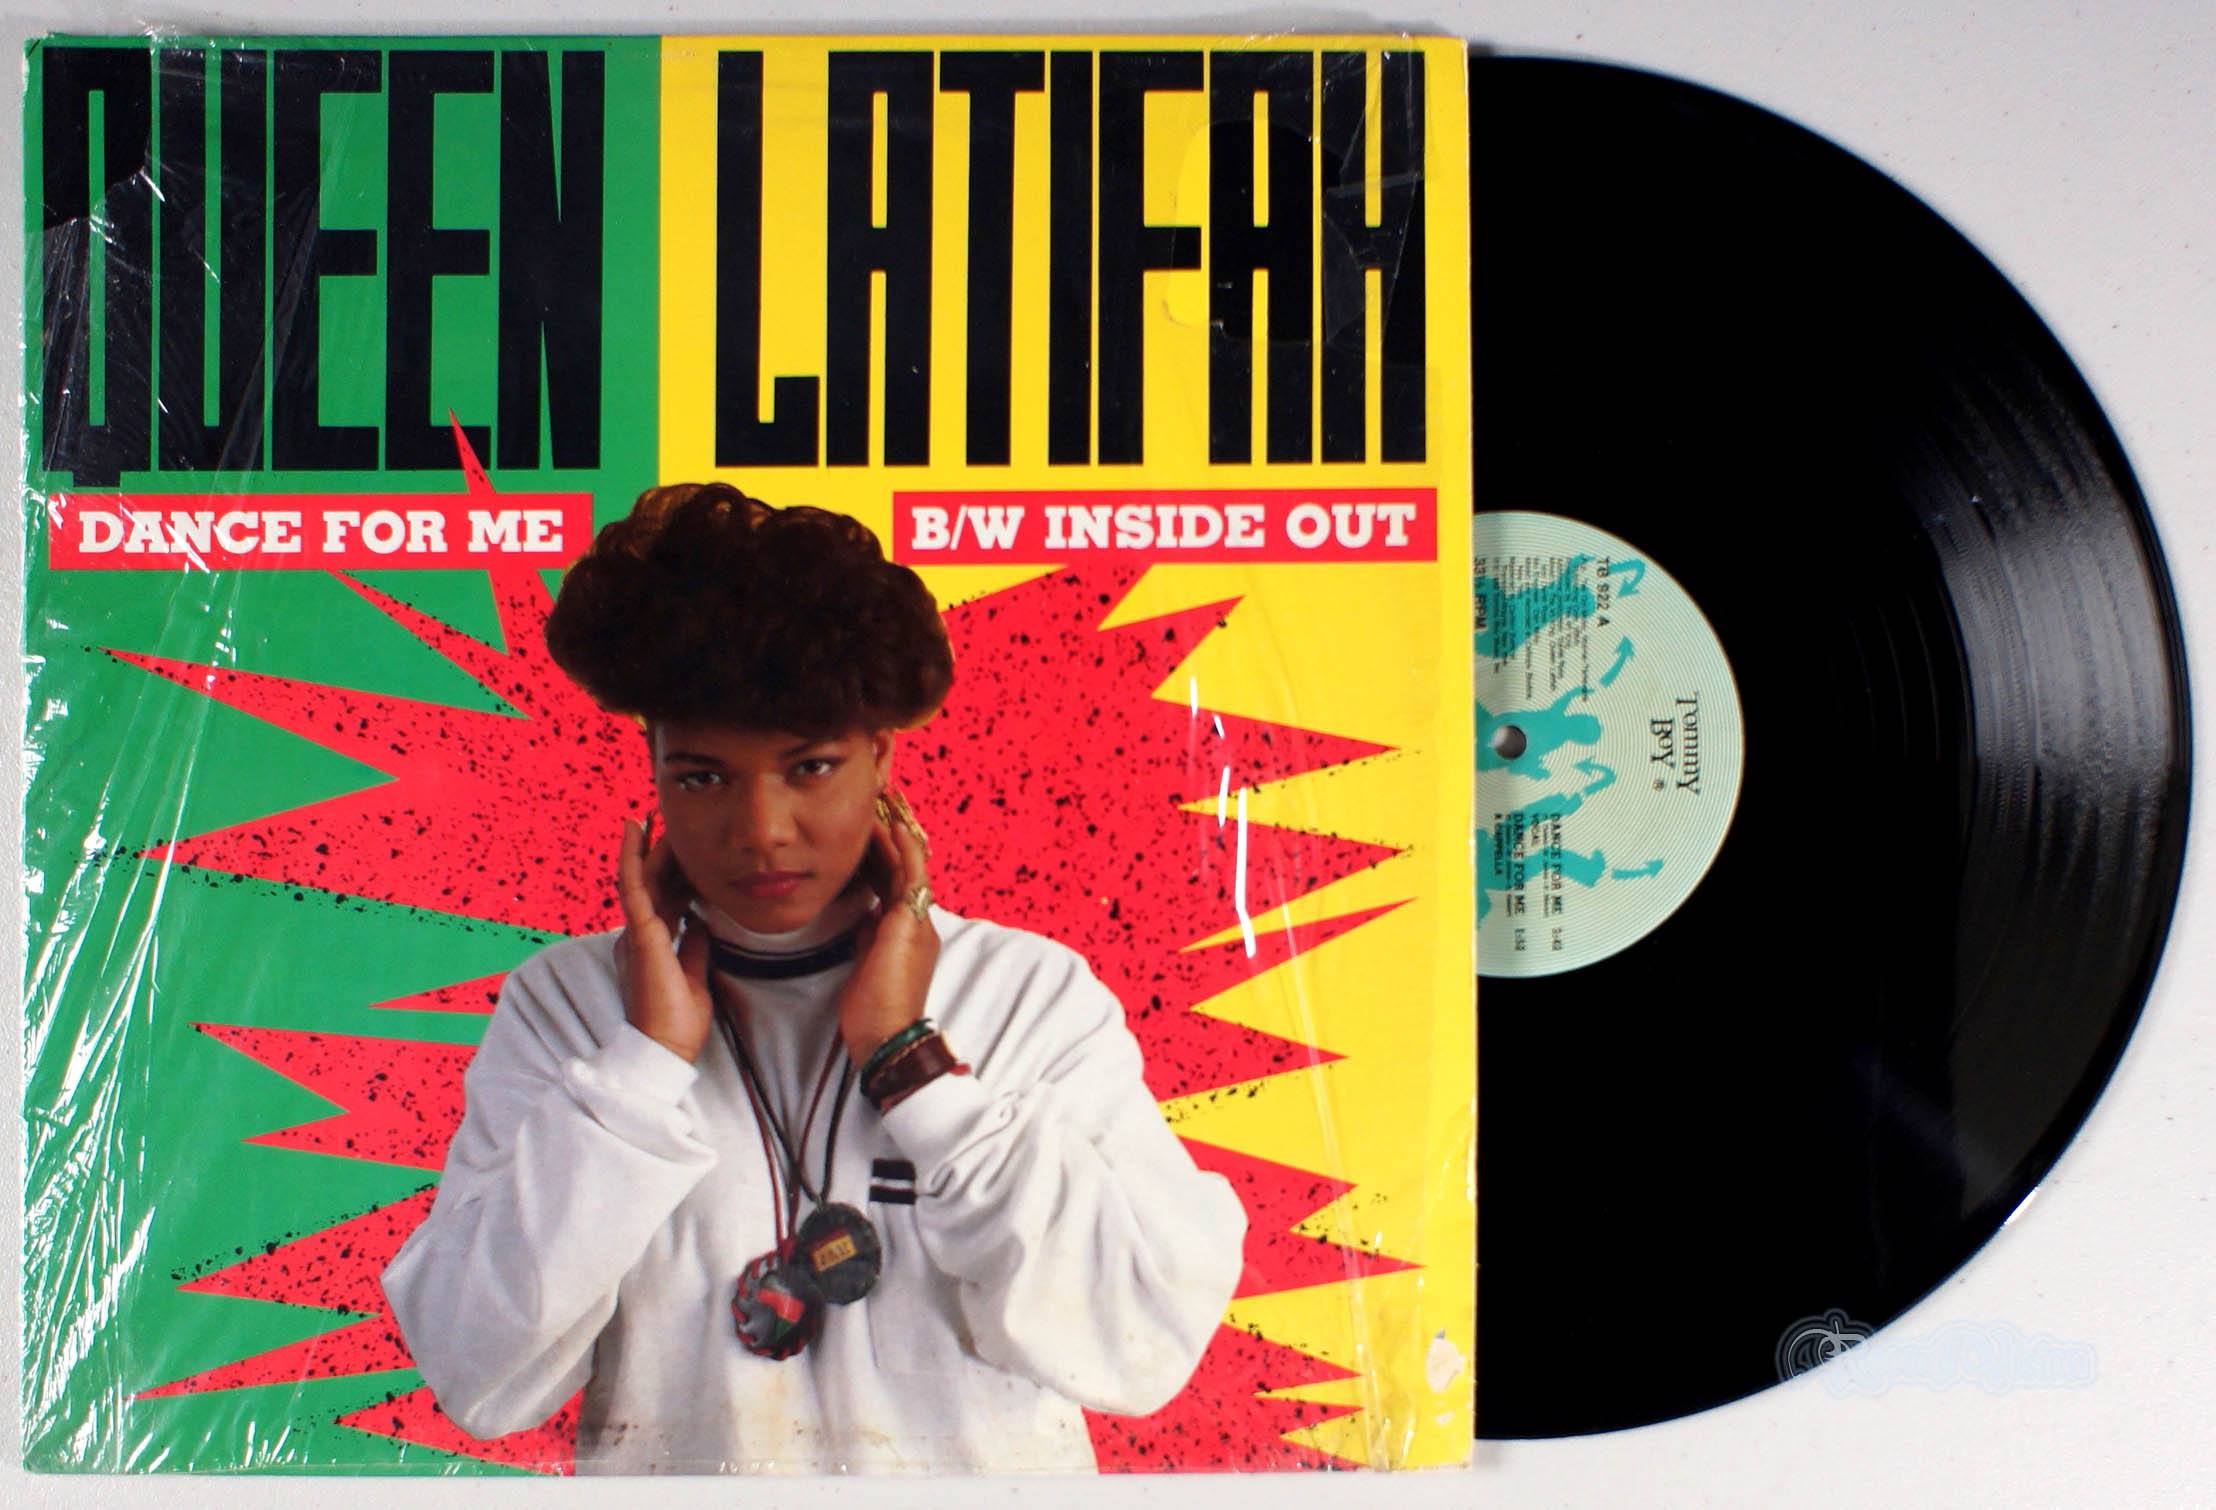 QUEEN LATIFAH - Dance for Me - 12 inch x 1